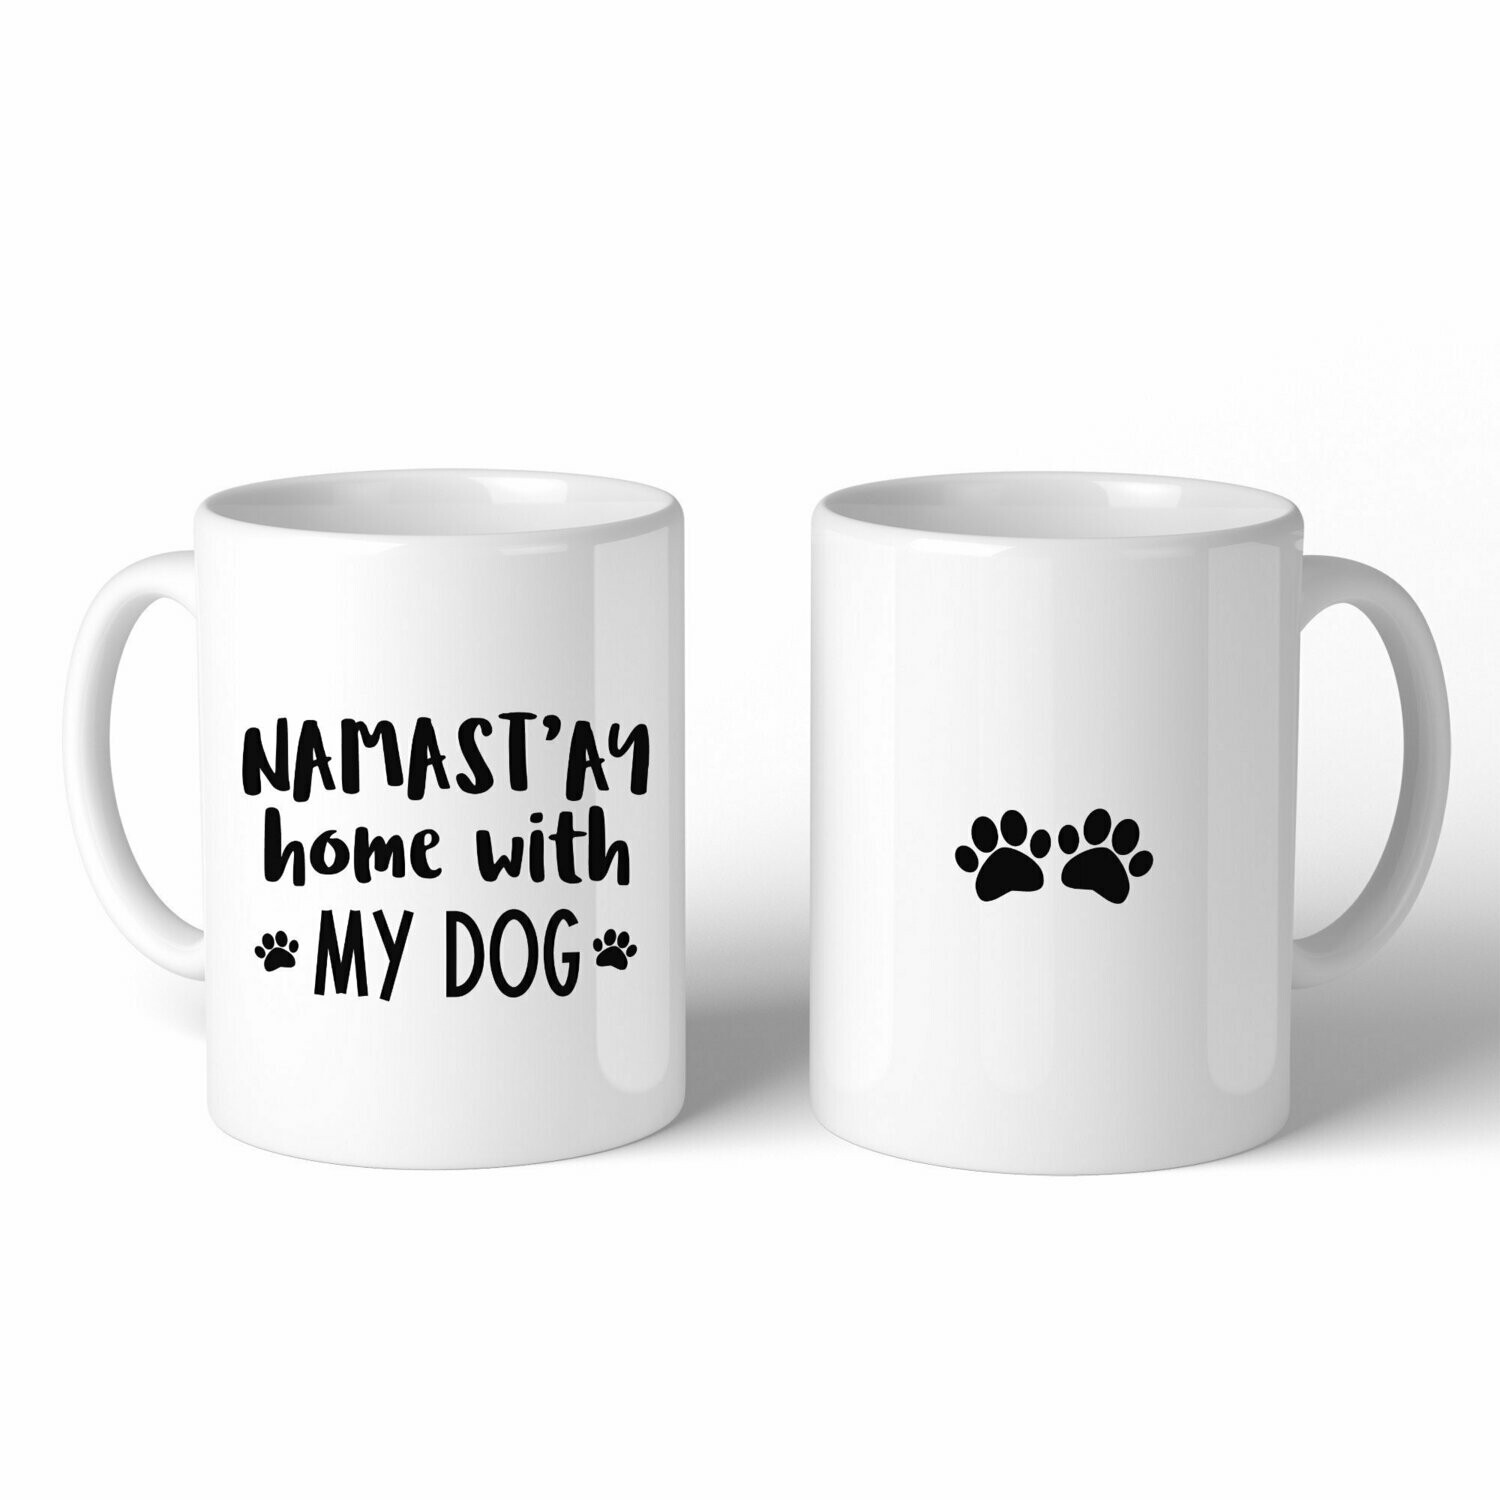 Namast'ay Home With My Dog Mug